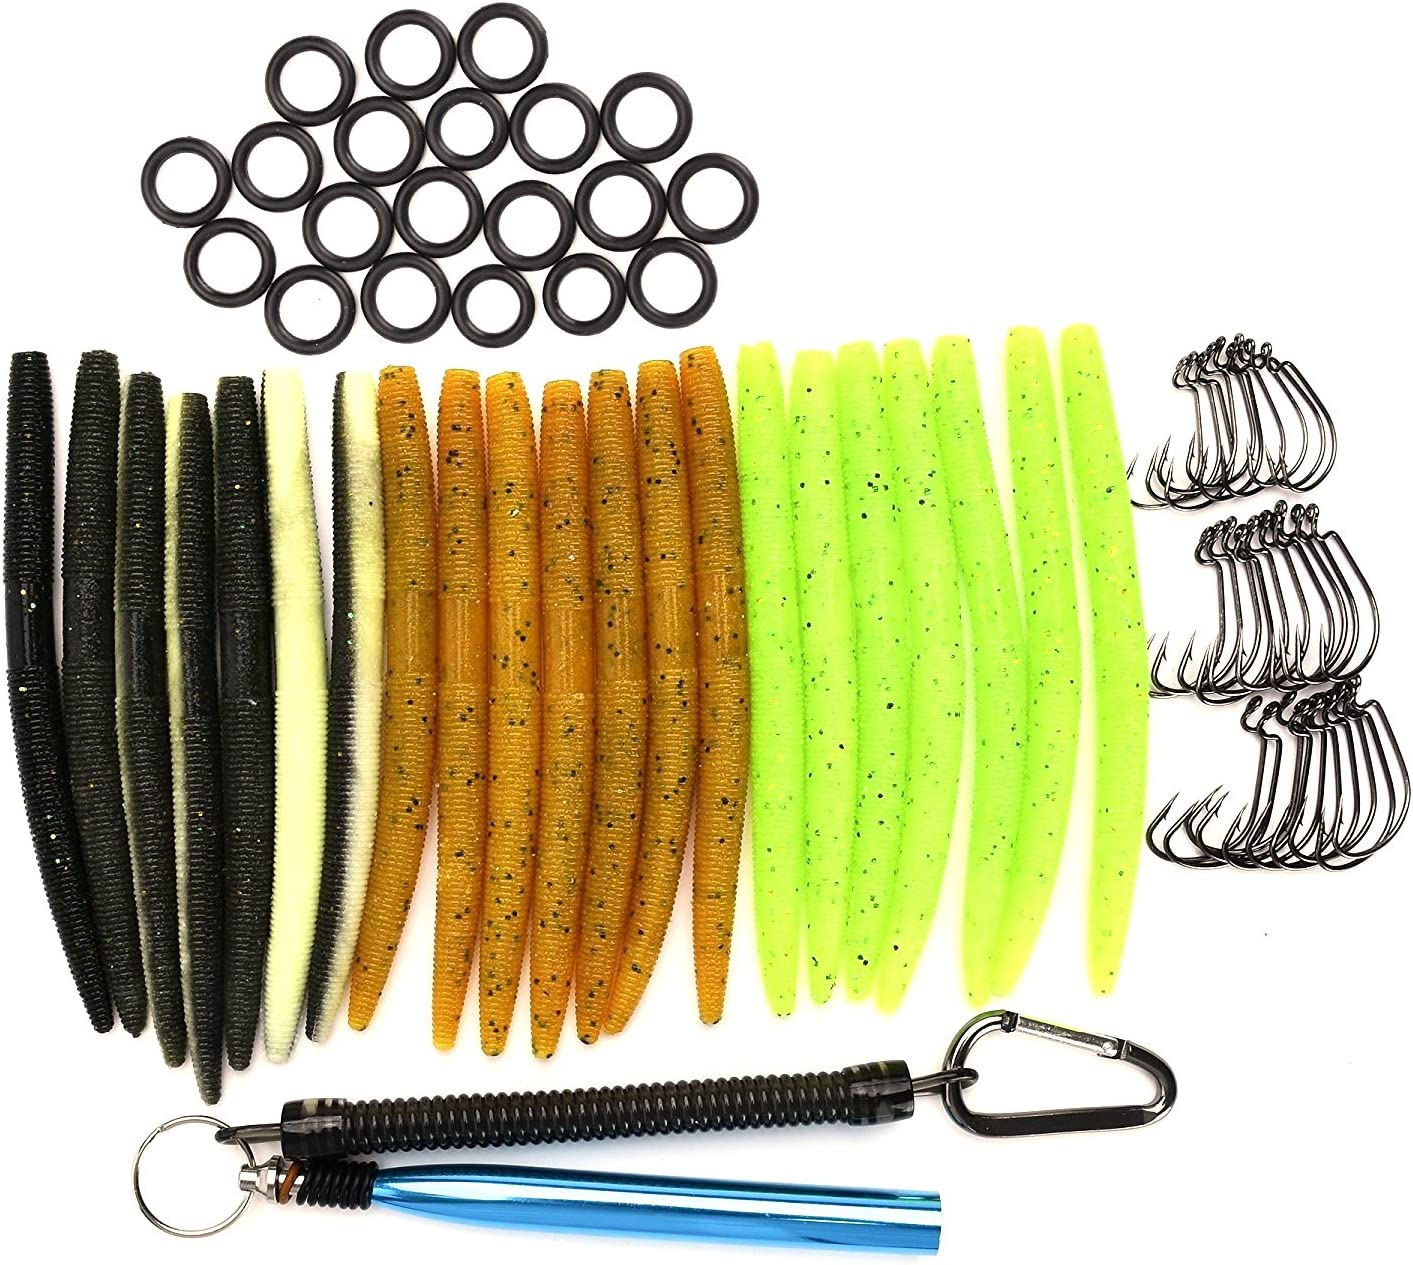 Wacky Rig Worm Kit Artificial Soft Plastic Bait Set Fishing Fake Lures 176 Piece